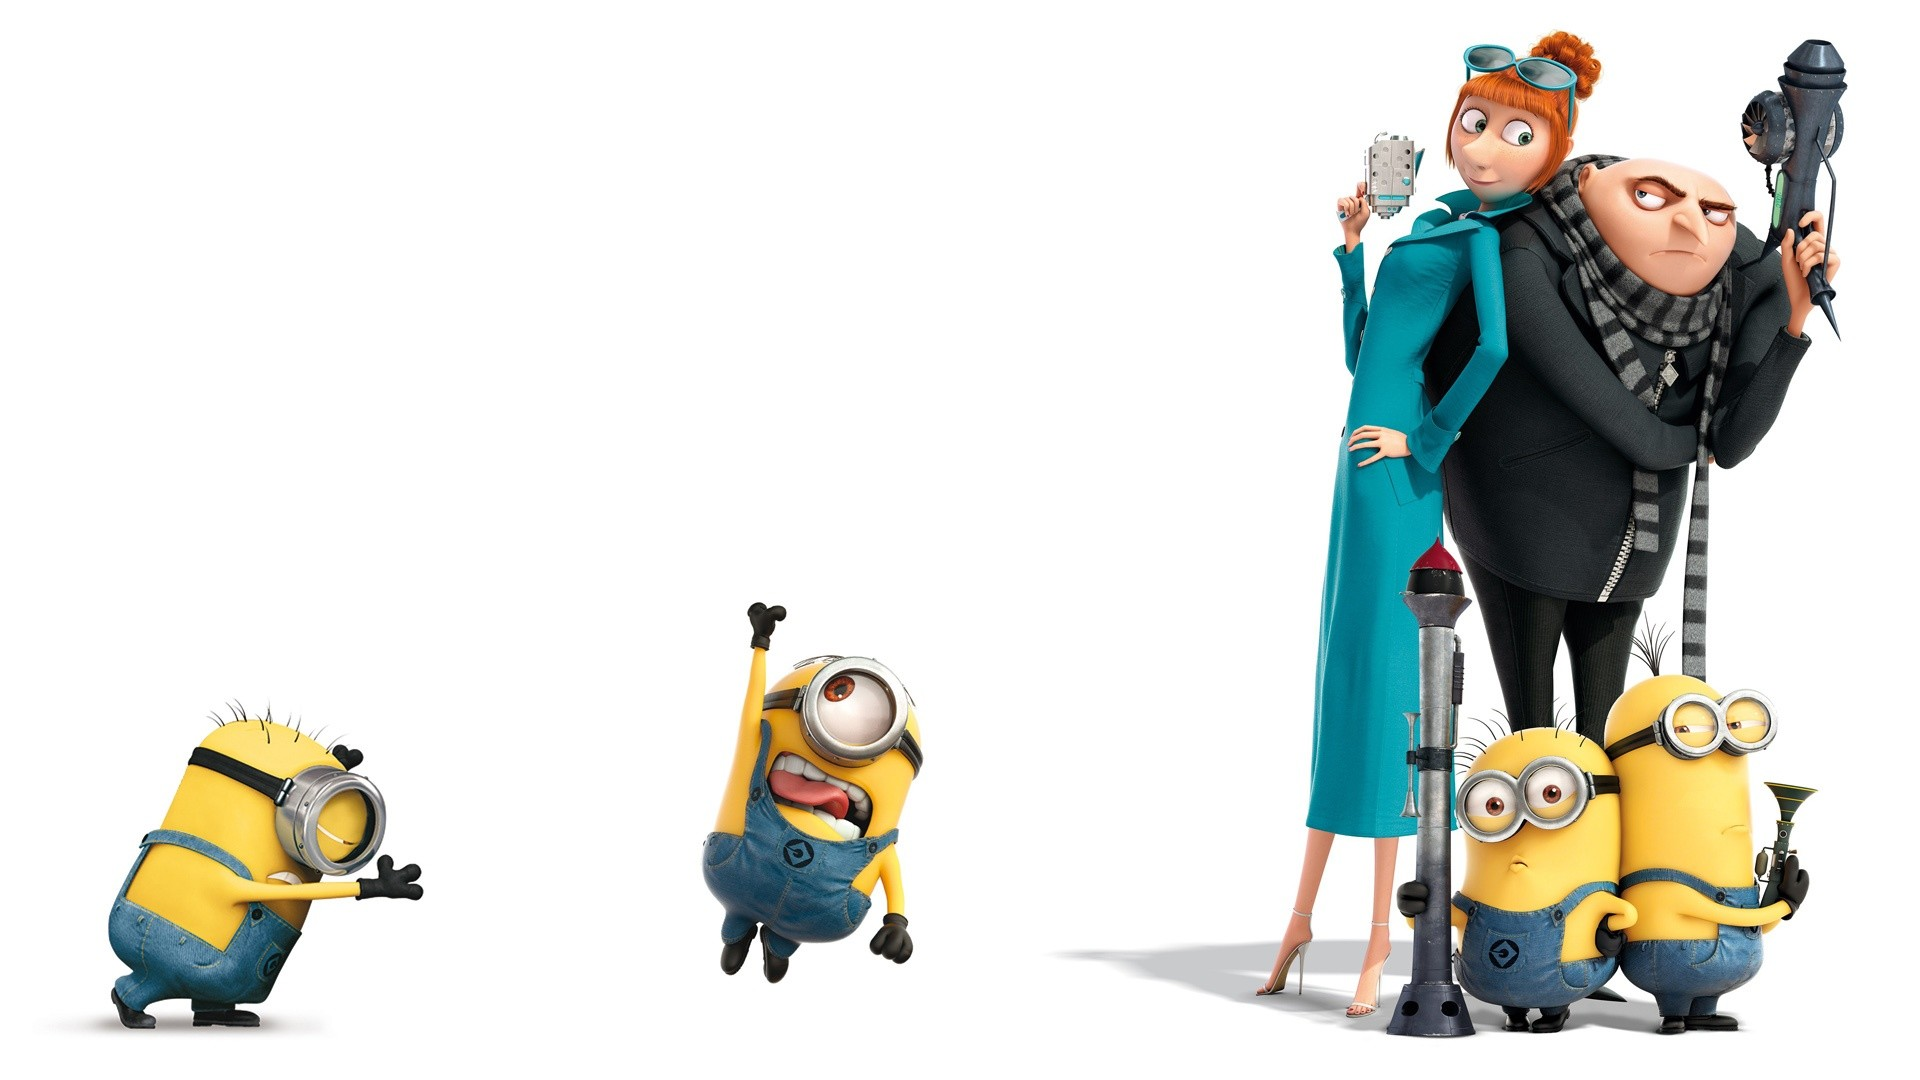 1920x1080 Despicable Me Minion HD Desktop Wallpaper